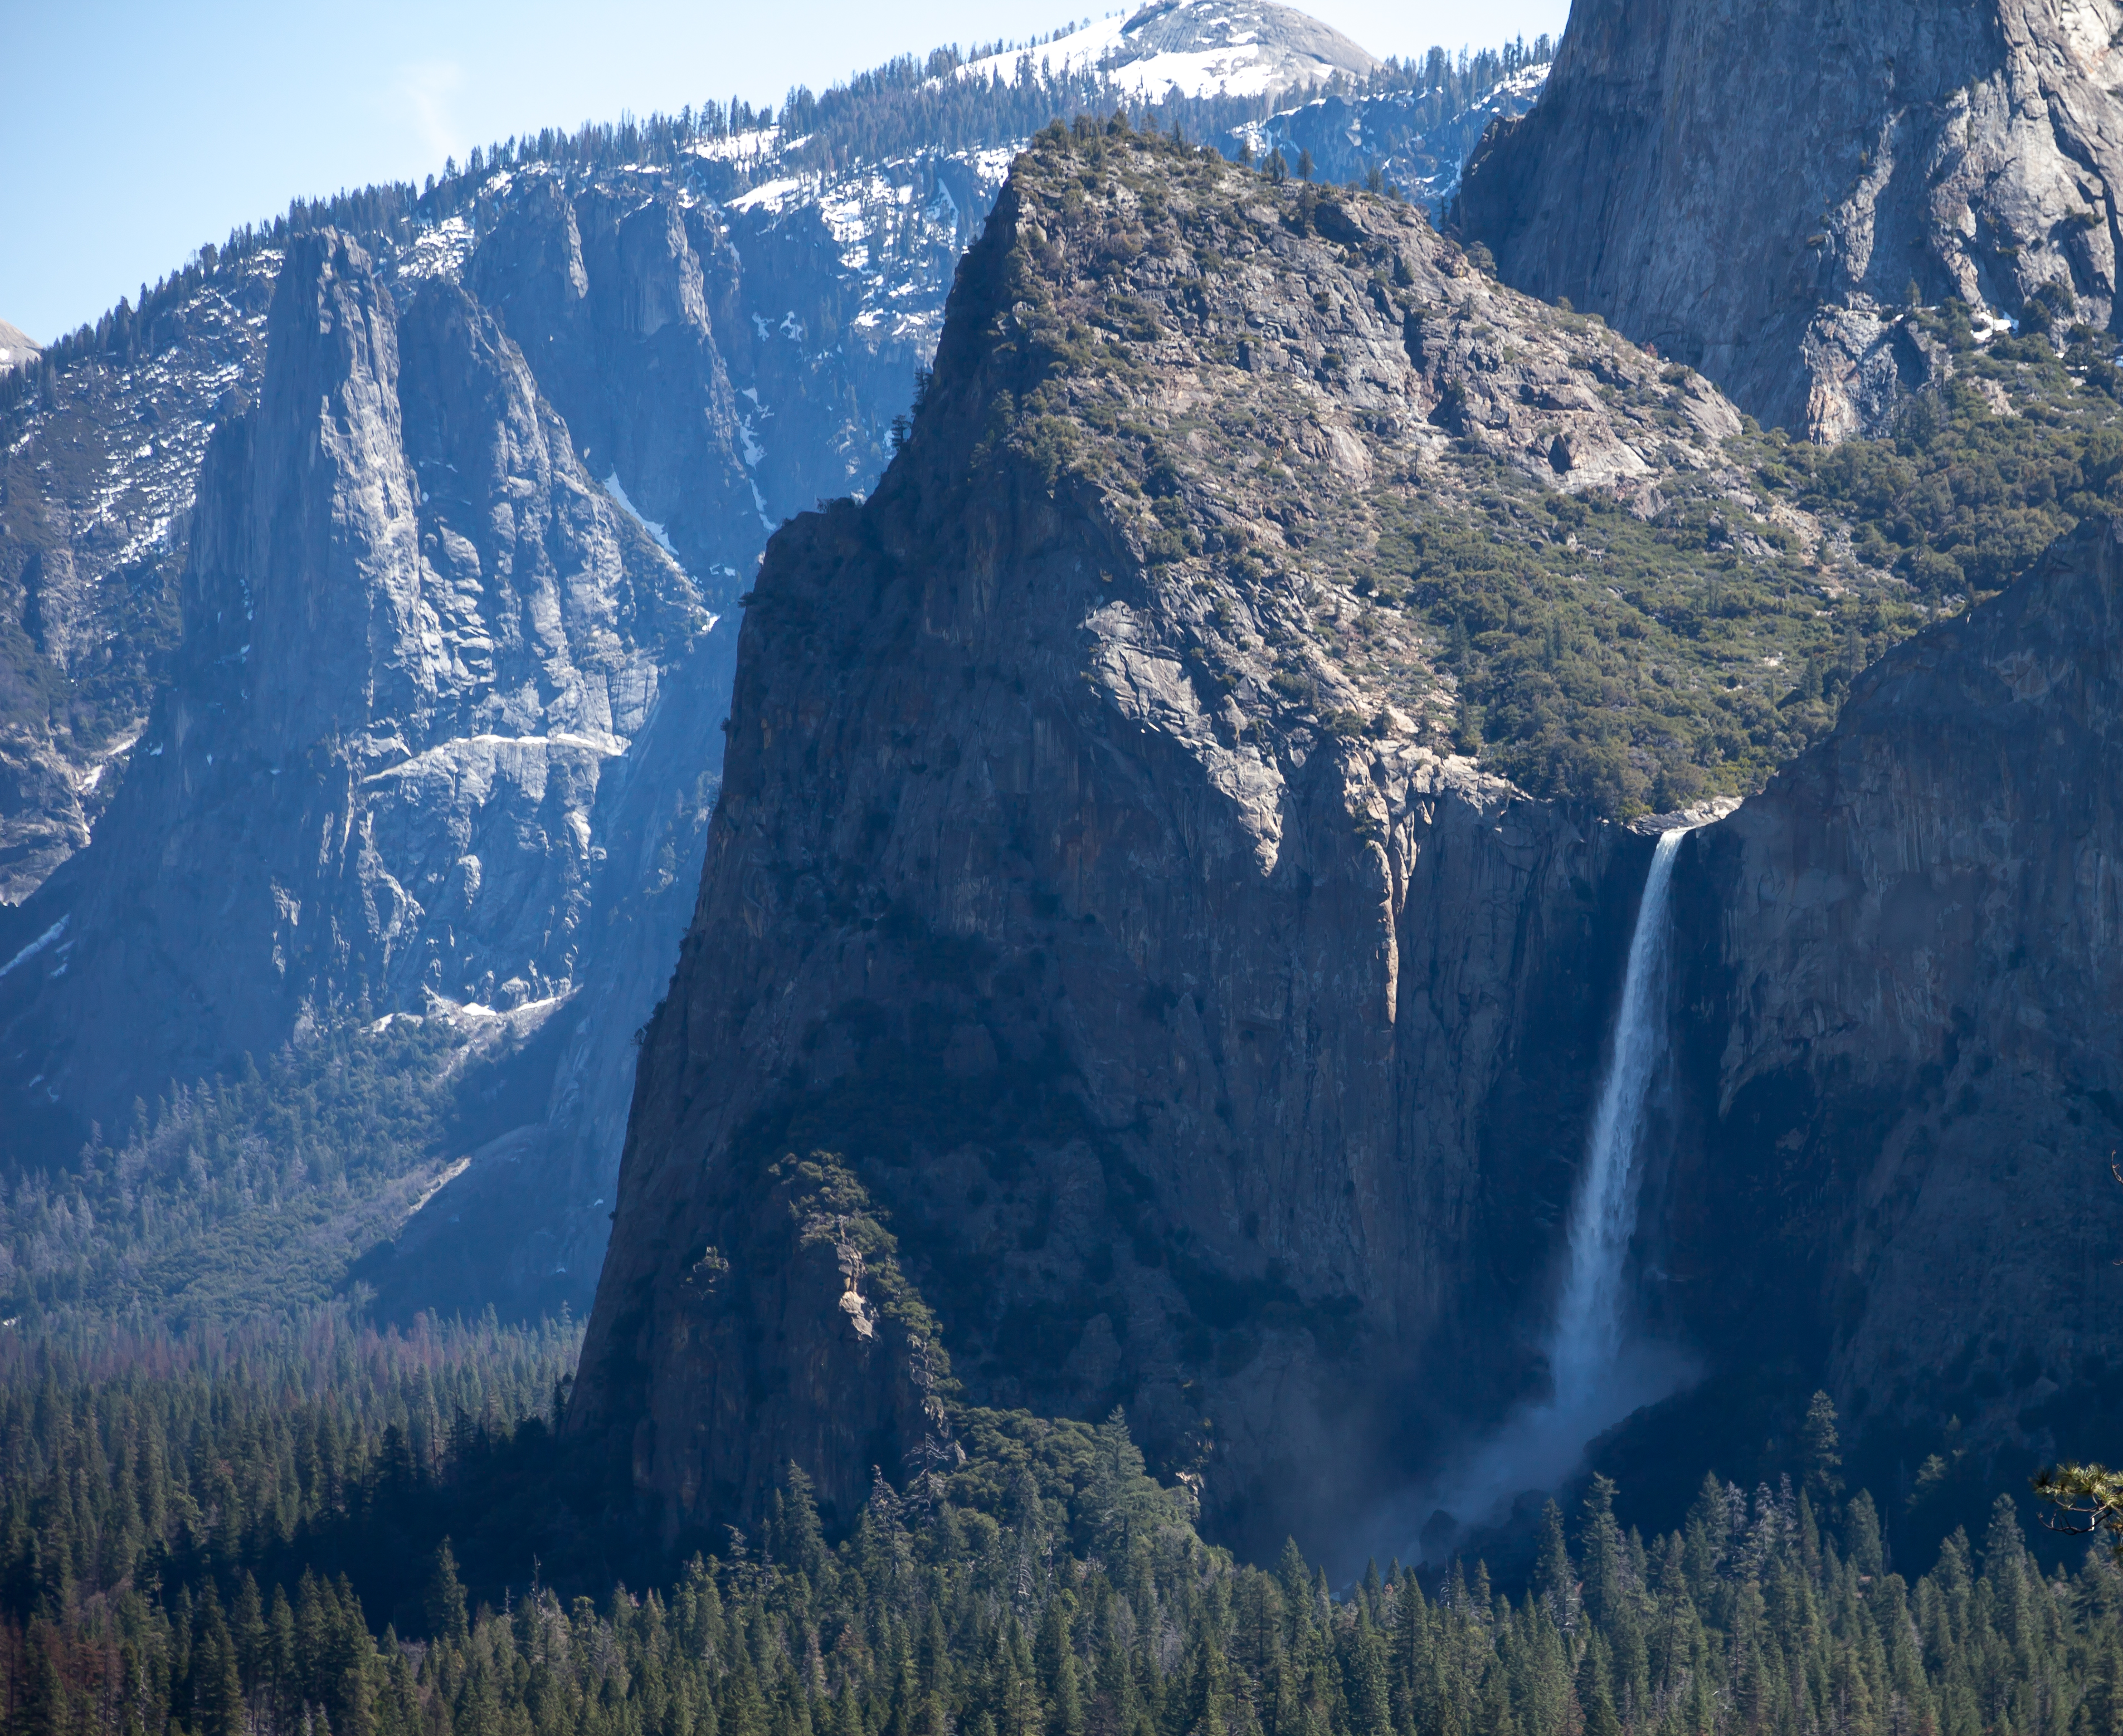 a view of Bridalveil Fall from a distance